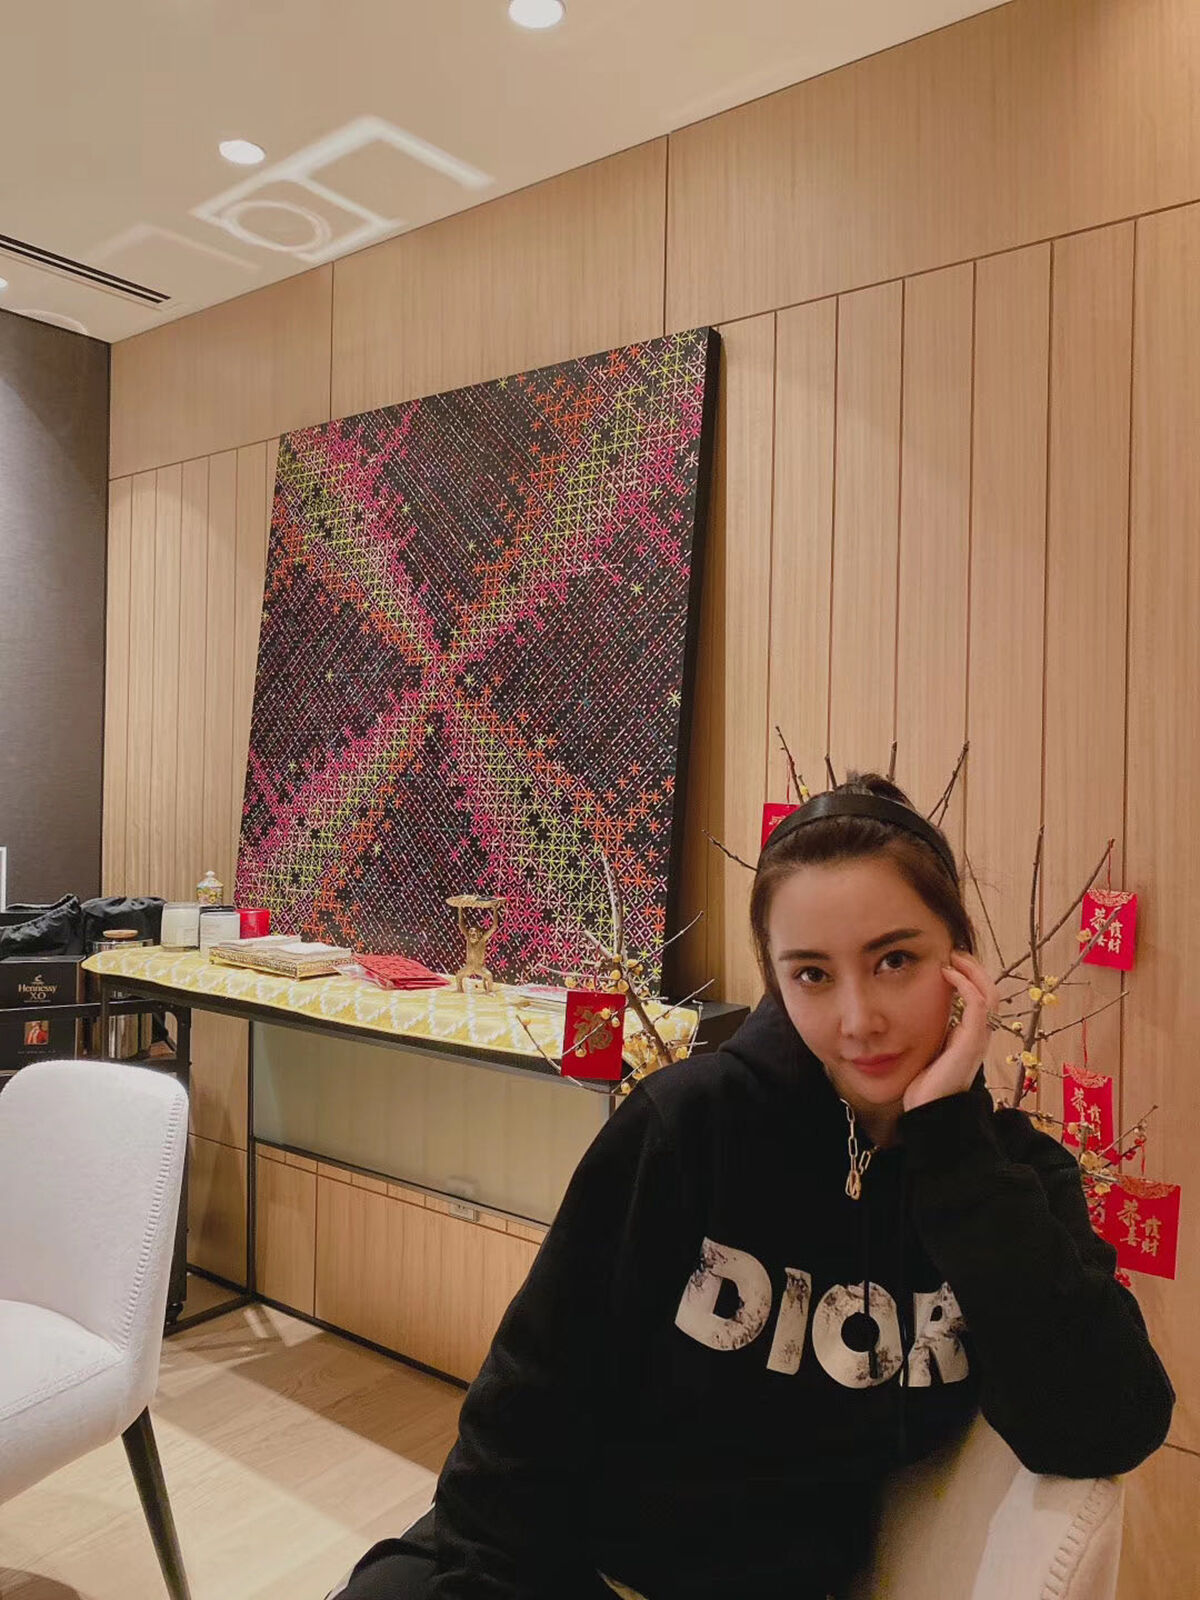 Portrait of Kylie Ying with Ding Yi, Appearance of Crosses 2017-15, 2017. Courtesy of Kylie Ying.